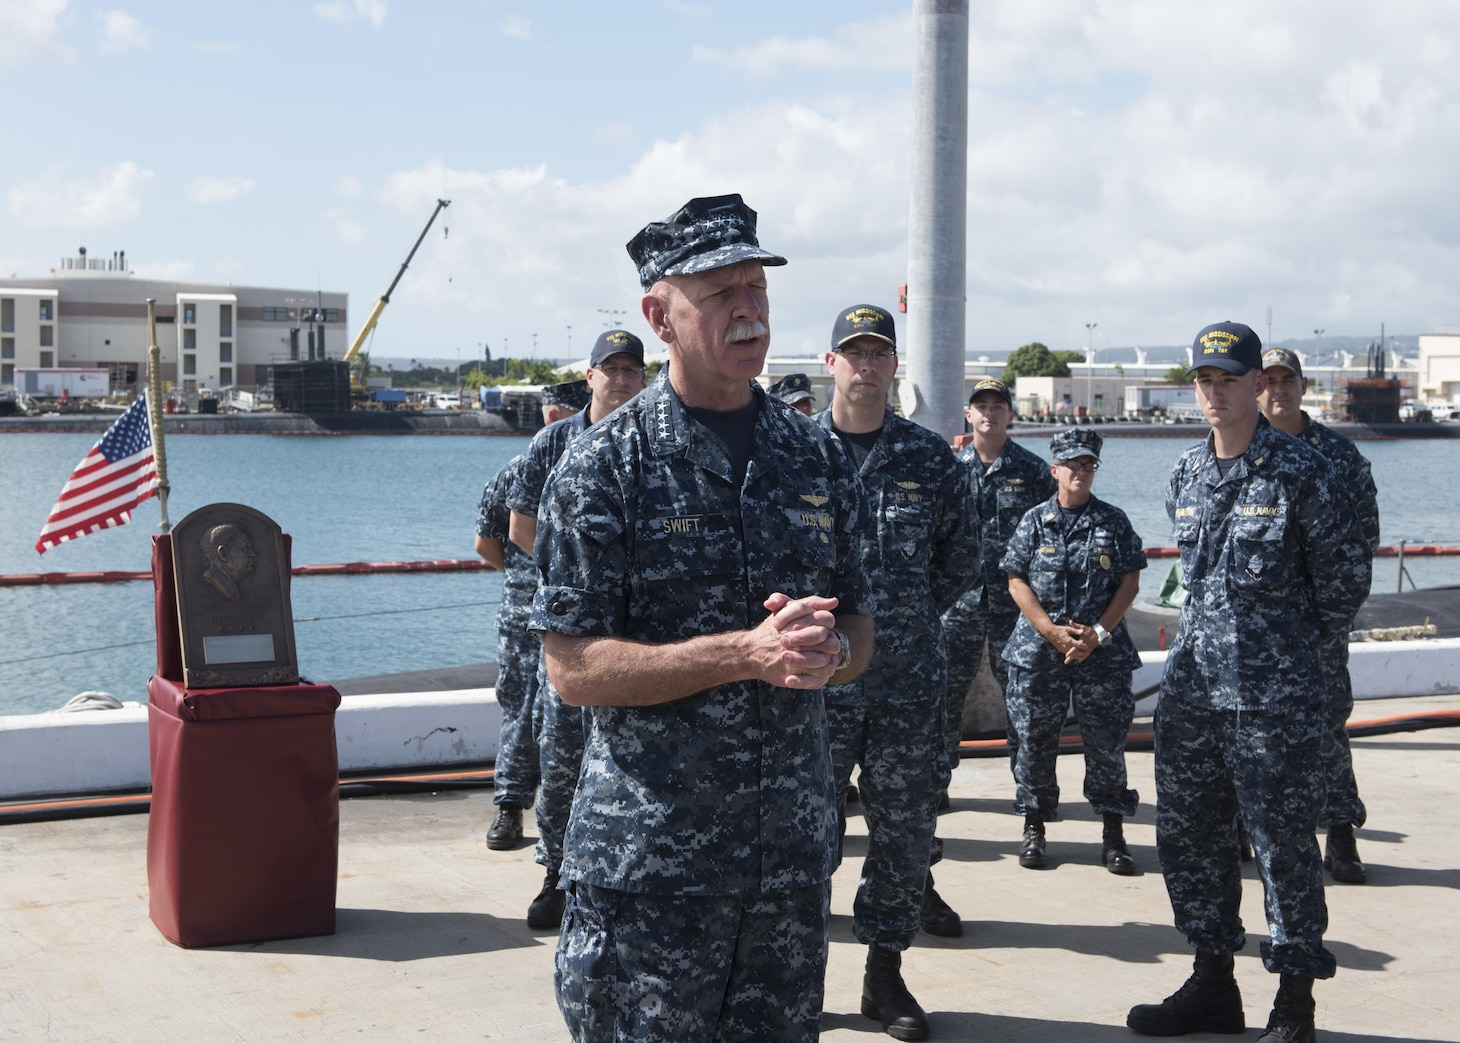 170830-N-KV911-104 PEARL HARBOR, Hawaii (Aug. 30, 2017) Adm. Scott Swift, commander, U.S. Pacific Fleet presents the Arleigh Burke Fleet Trophy to the crew of the Virginia-class fast-attack submarine USS Mississippi (SSN 782). The trophy is awarded to a ship that best represents the fleet, achieving the best overall improvement in battle efficiency, and is presented annually to the most-improved ships or aviation squadrons in both the Atlantic and Pacific Fleets. (U.S. Navy photo by Mass Communication Specialist 2nd Class Shaun Griffin)